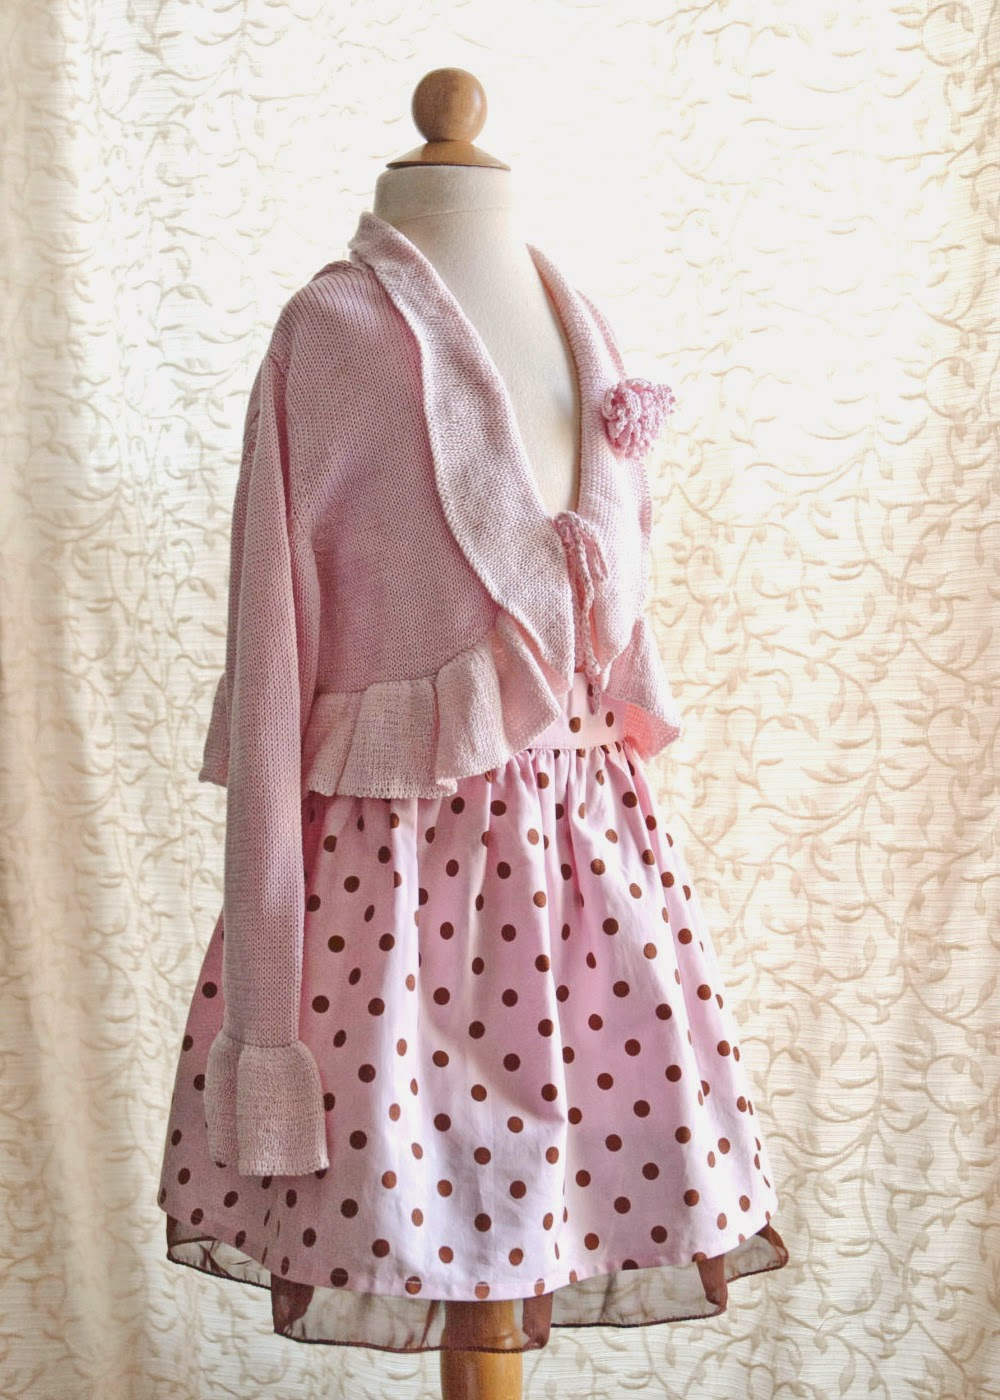 https://www.etsy.com/listing/184062515/cotton-knit-pink-ruffled-bolero-polkadot?ref=shop_home_active_18